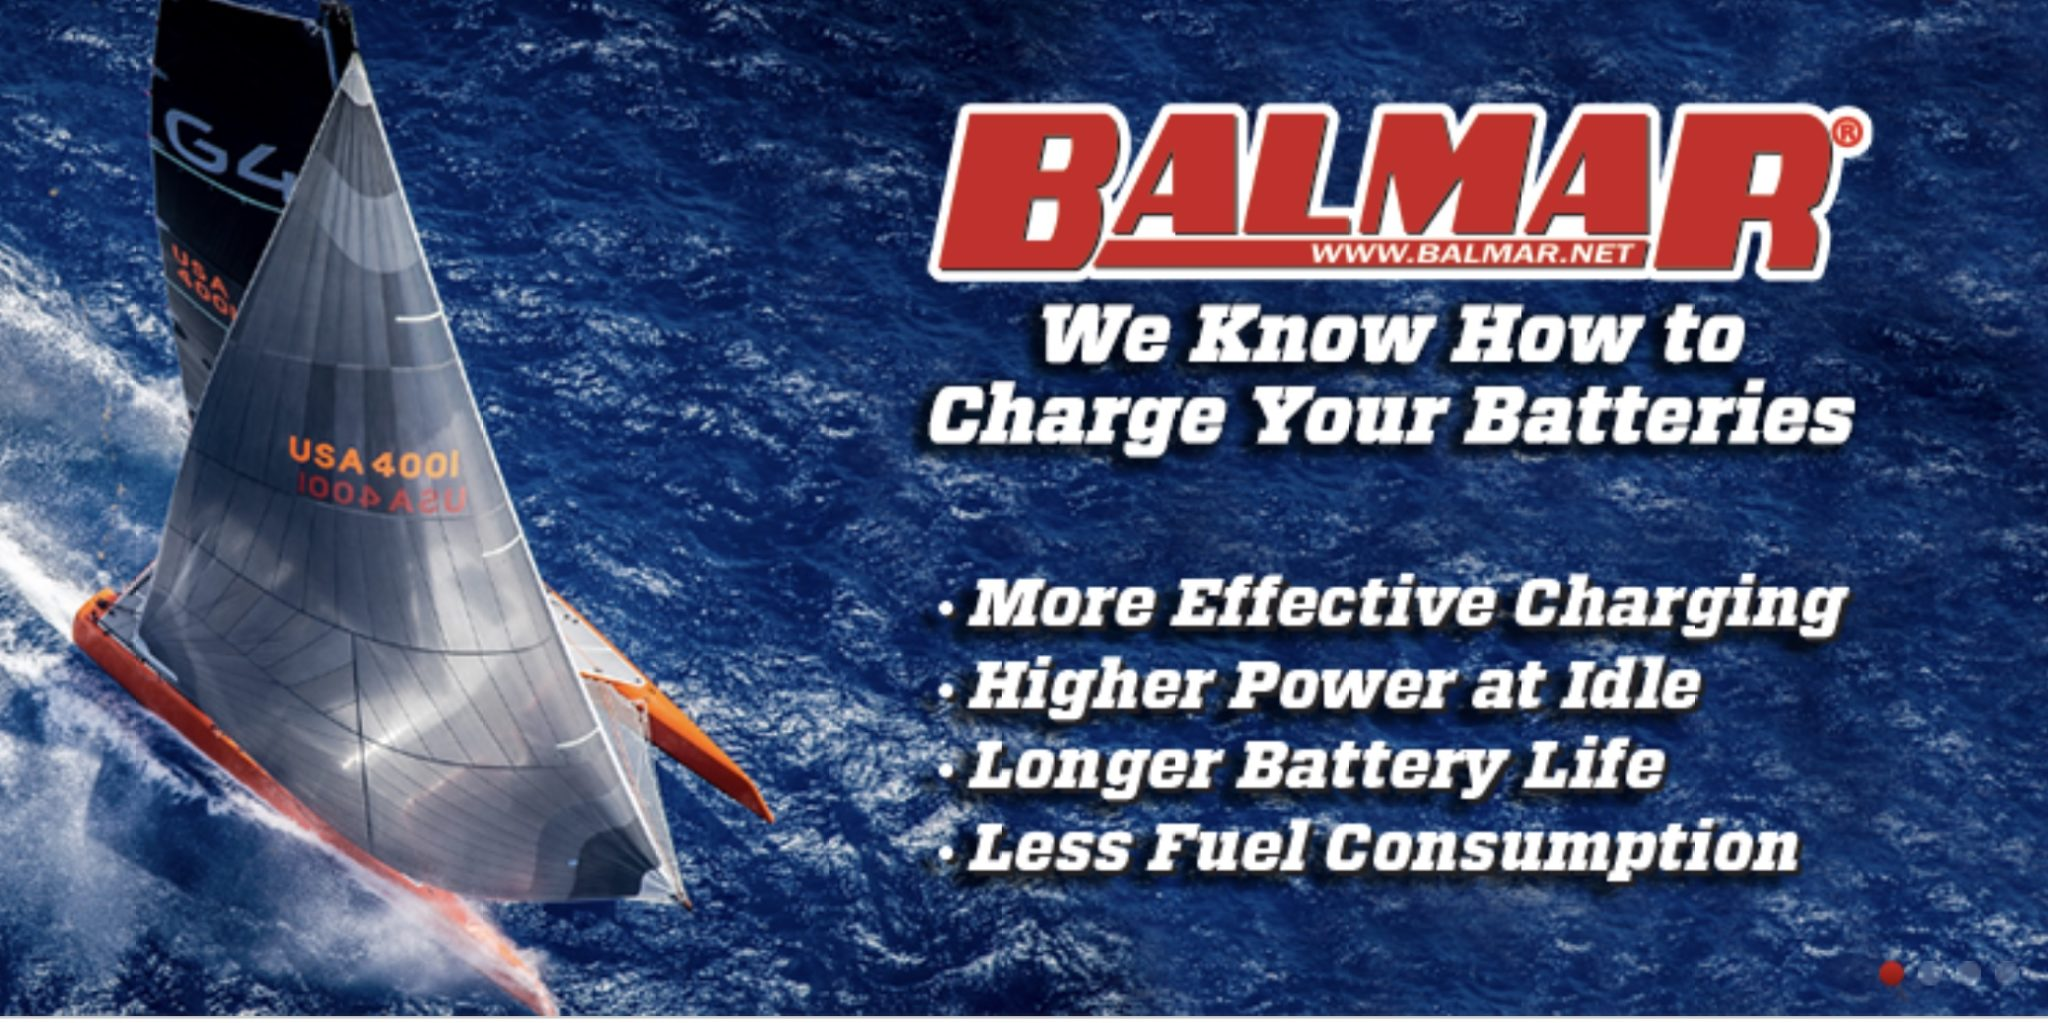 Balmar Announces Regulator Support for Lithium Batteries